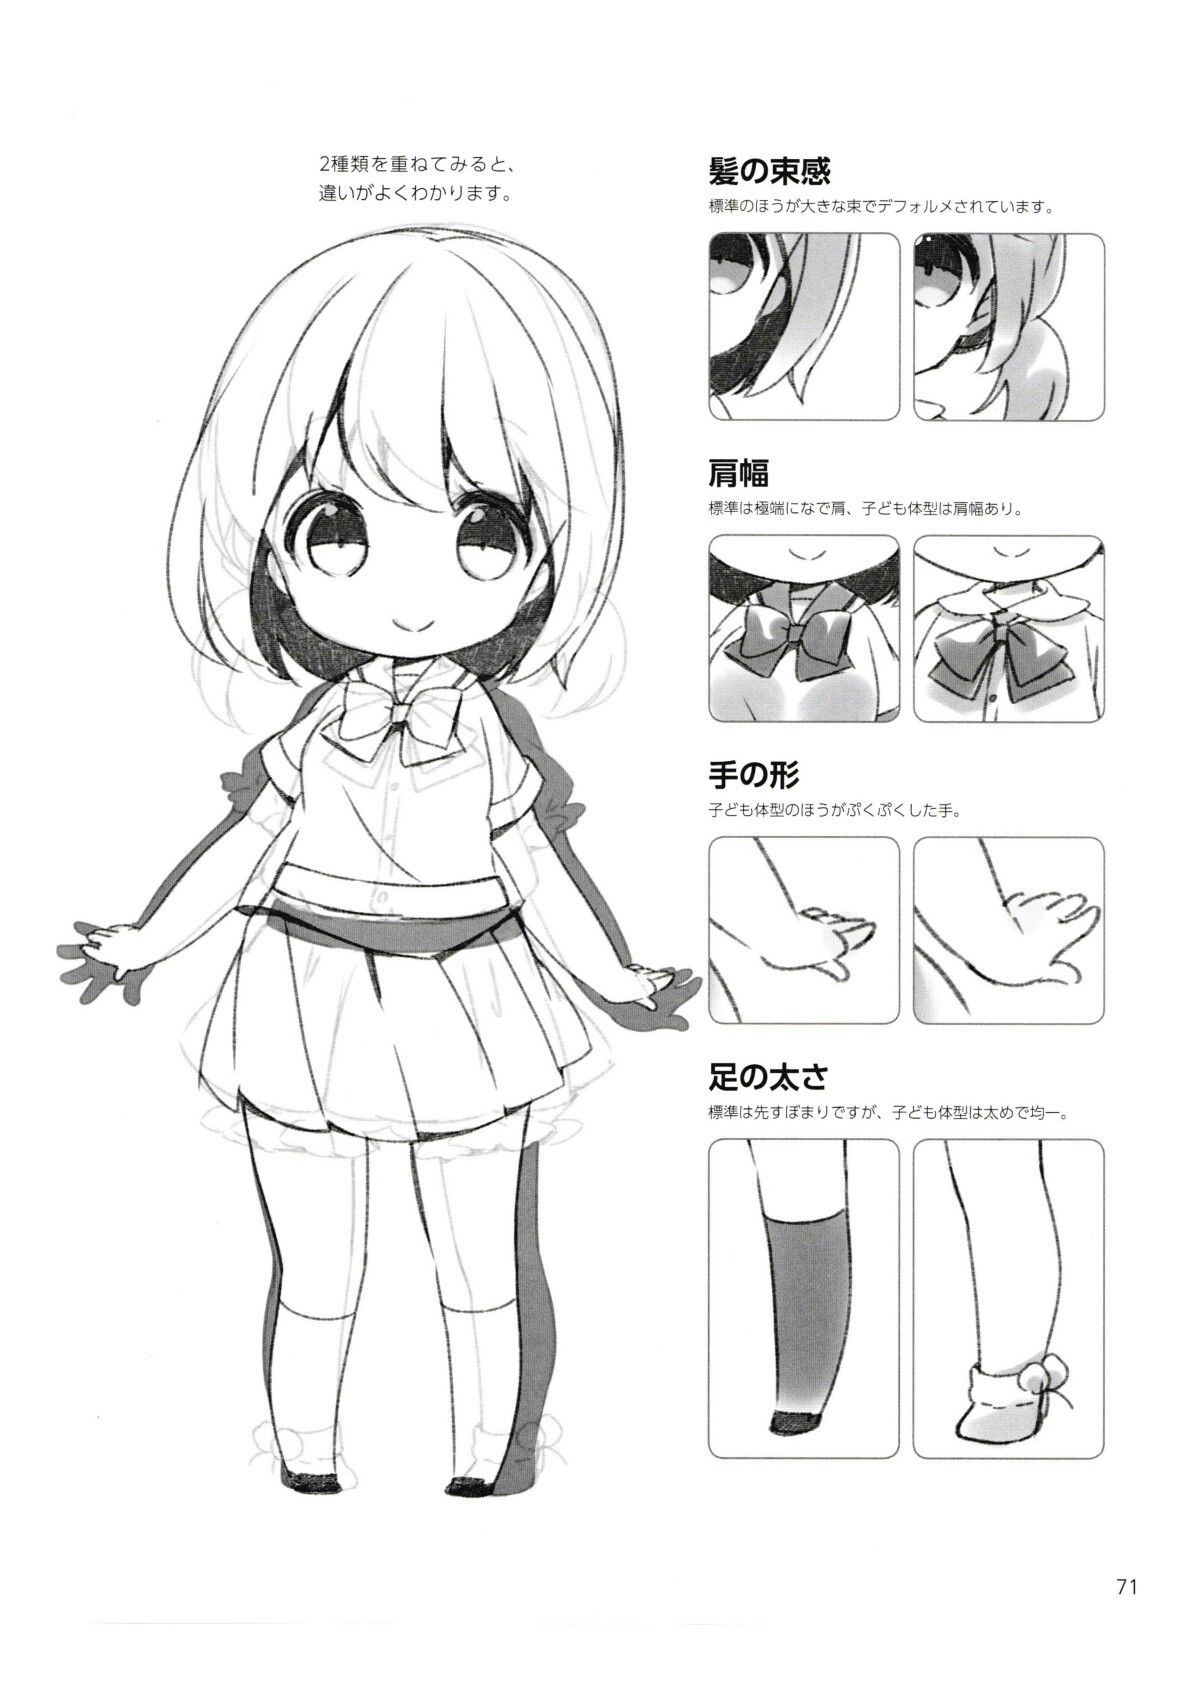 How to draw chibis71 Anime drawing books, Anime